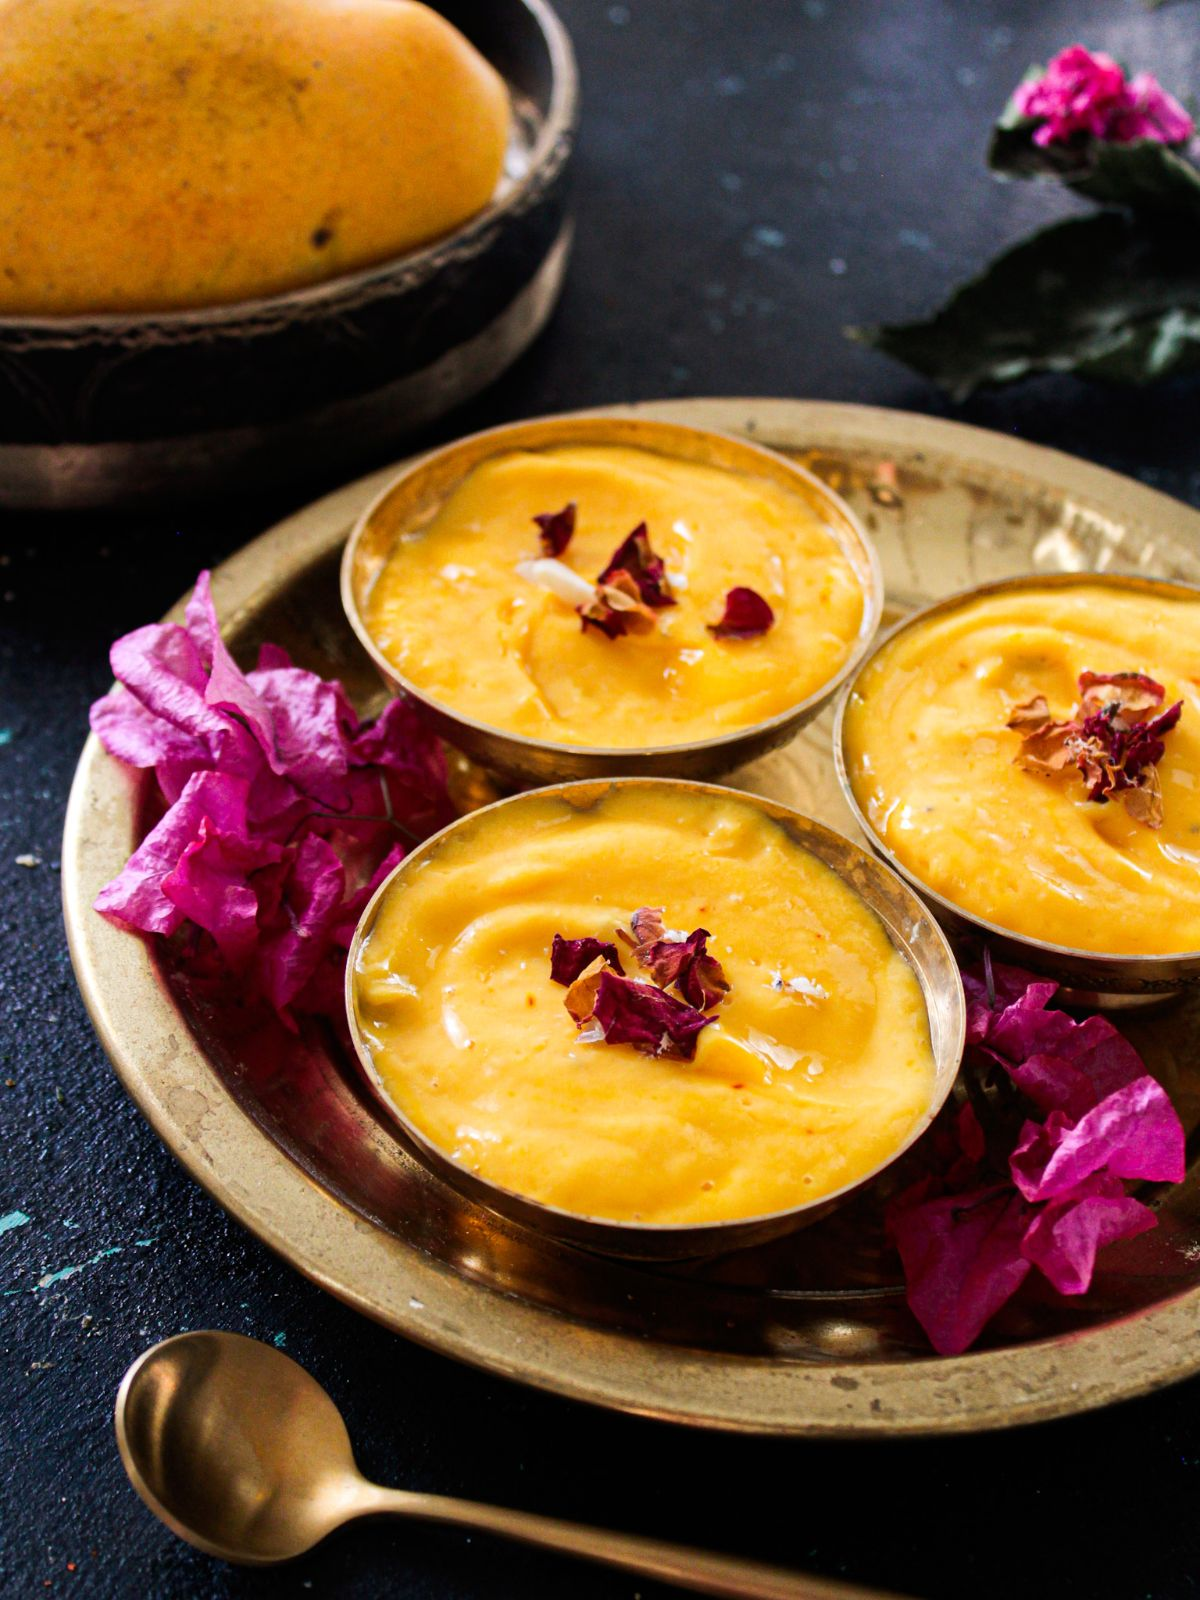 Mango shrikhand topped with rose petals in small gold bowls next to pink flowers